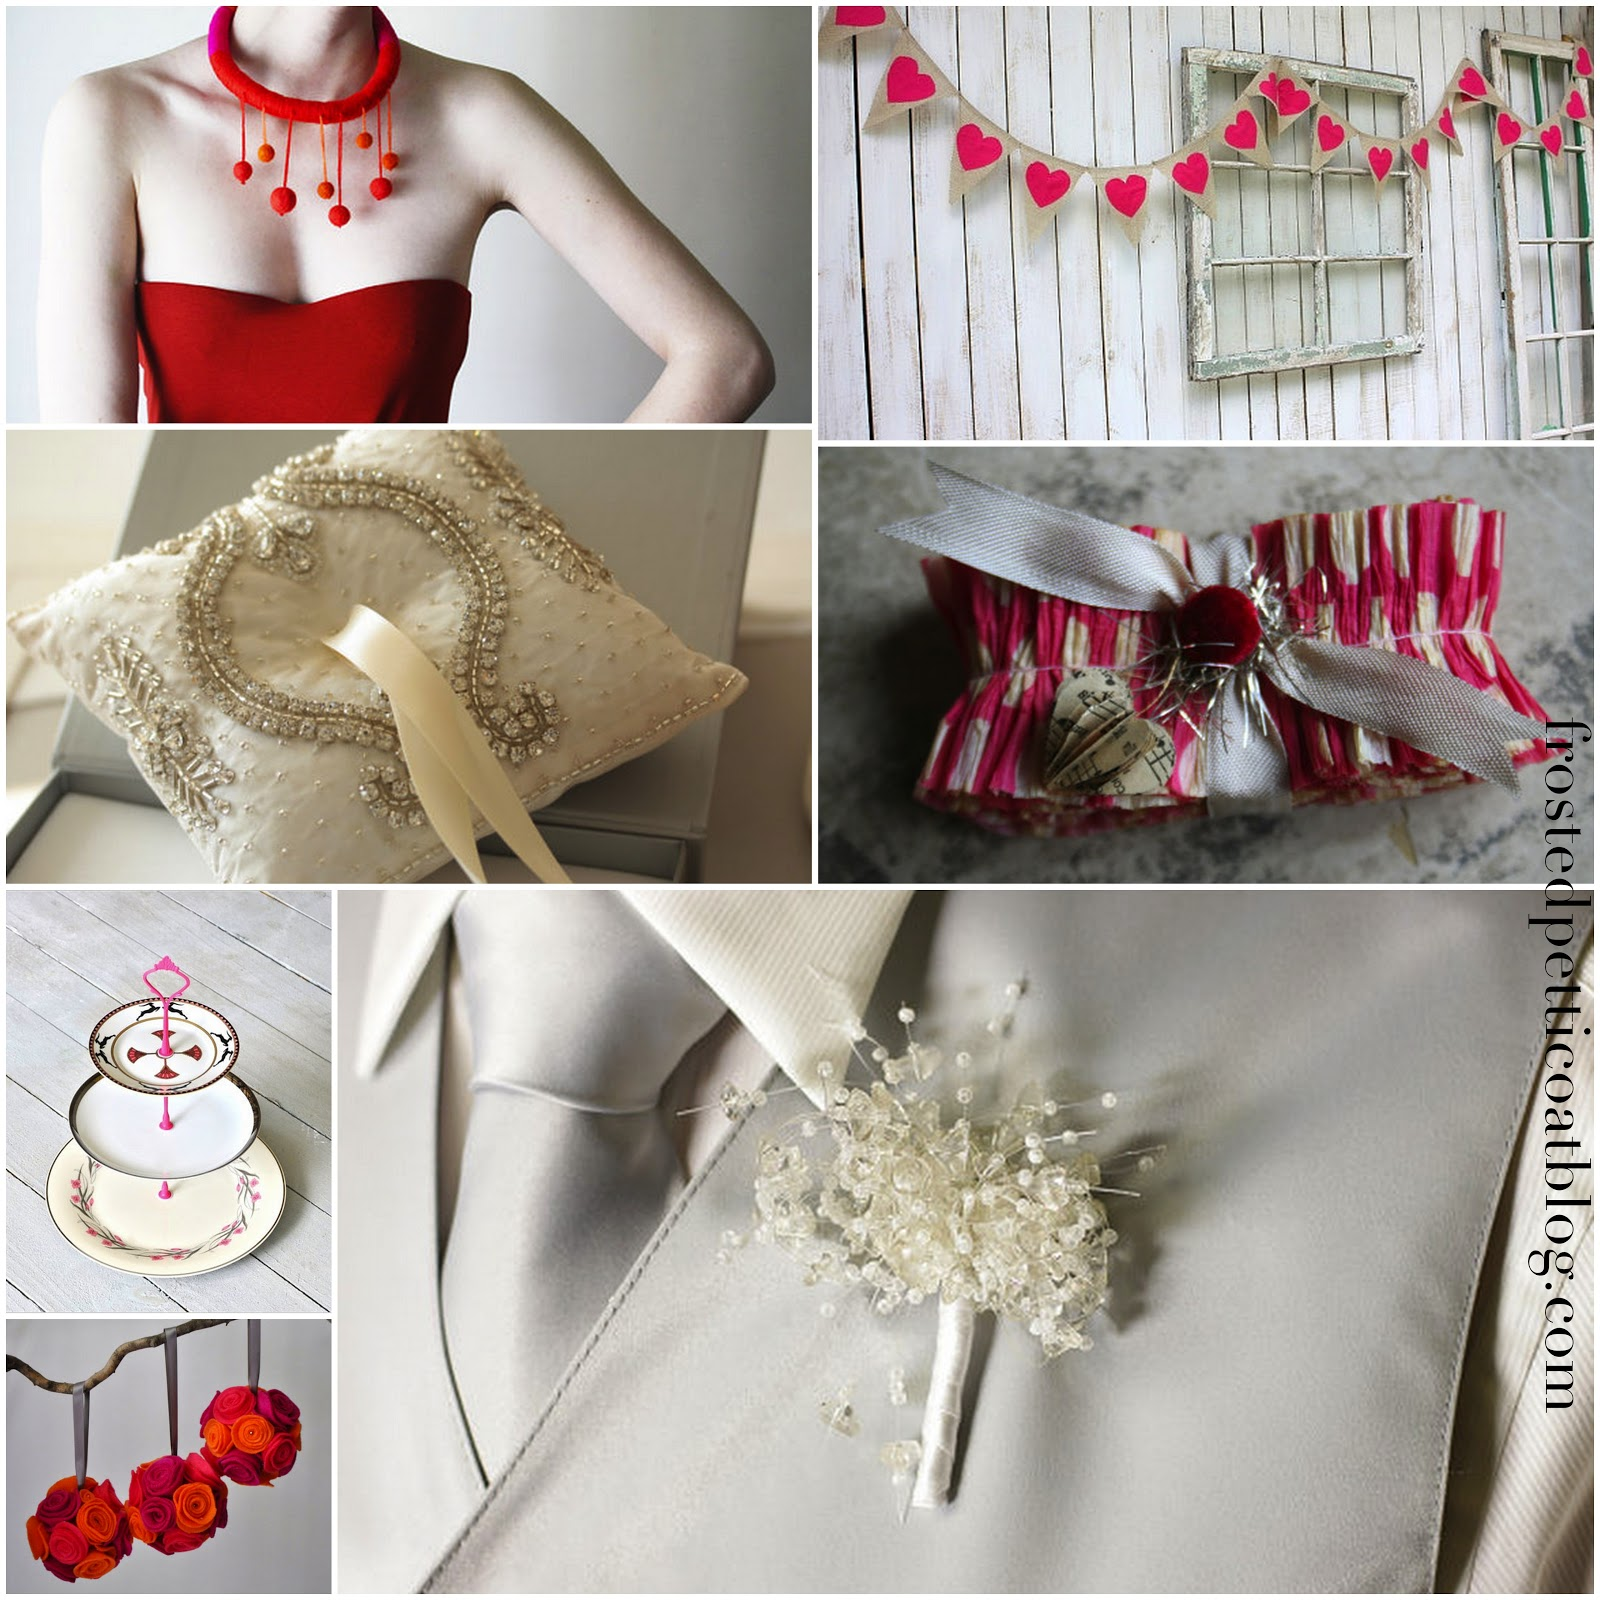 http://4.bp.blogspot.com/-f9Z1rcOFELo/UMo5NPobBaI/AAAAAAAAA4c/G9nIdzIqqUw/s1600/purse+clutch+bridal+bride+accessories+accessory+bag+giveaway+wedding+pink+red+white+valentines+day+valentine+cupid+winter+spring+dress+bouquet+boutonniere+offbeat+modern+contemporary+21.jpg